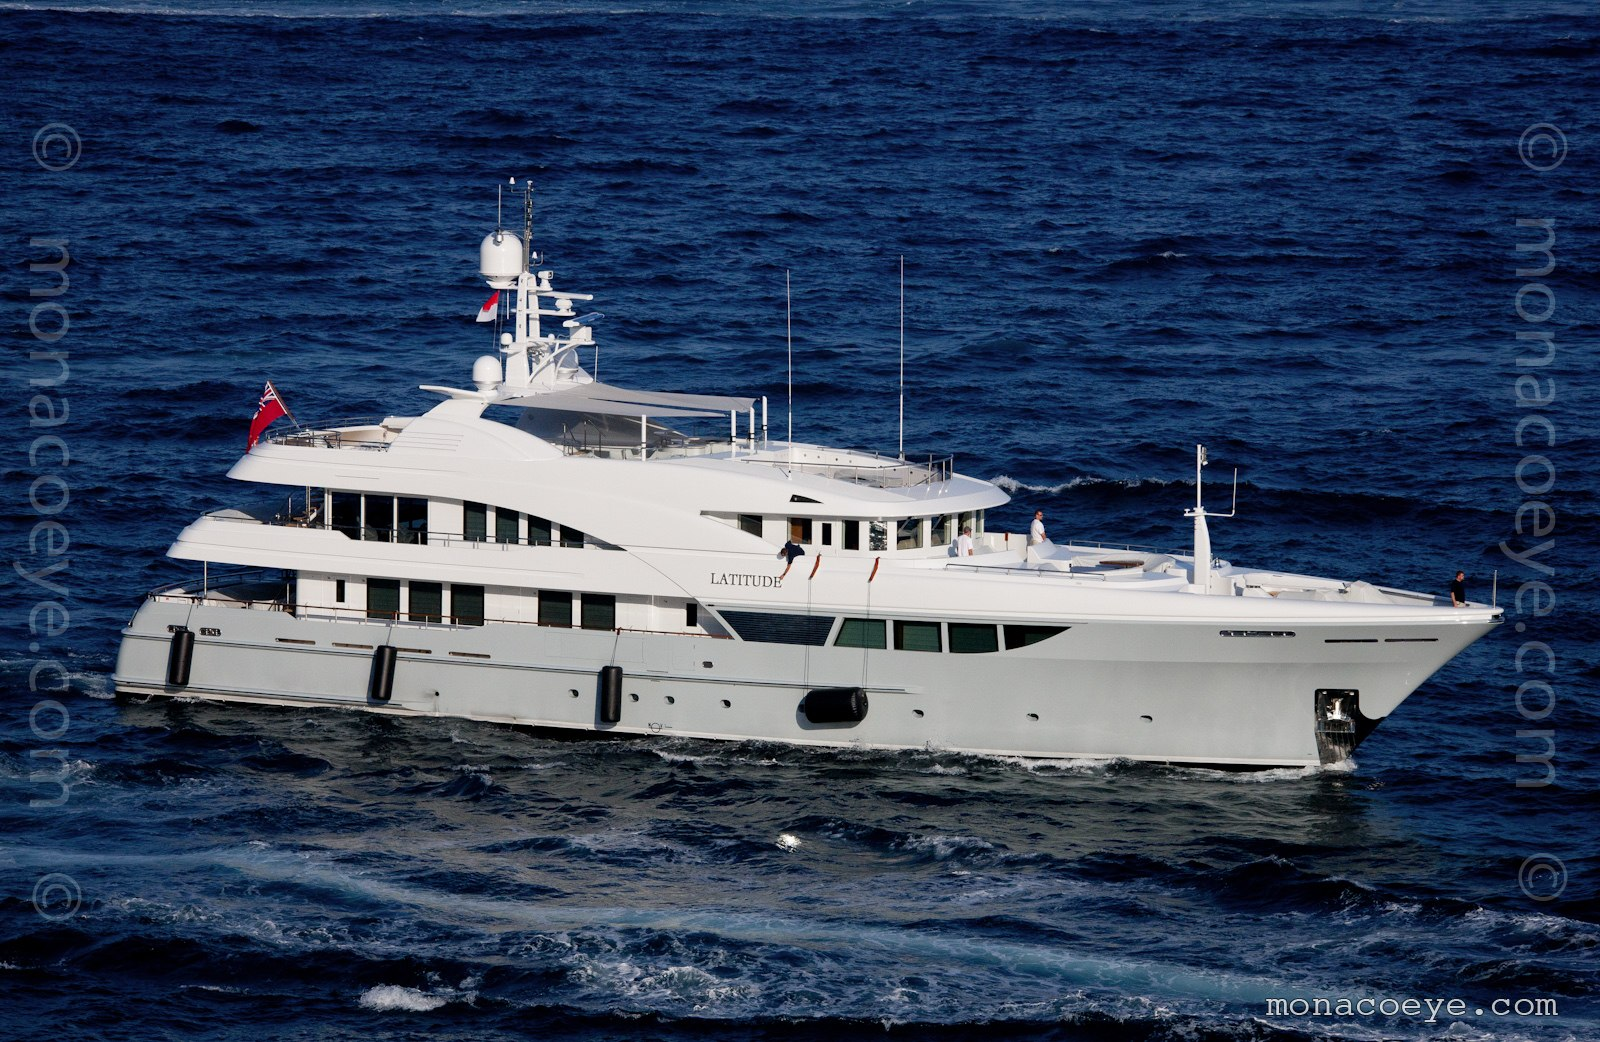 Latitude, 2011 design from Timmerman Yachts and Vripack. Originally called Alexandra, with blue hull.